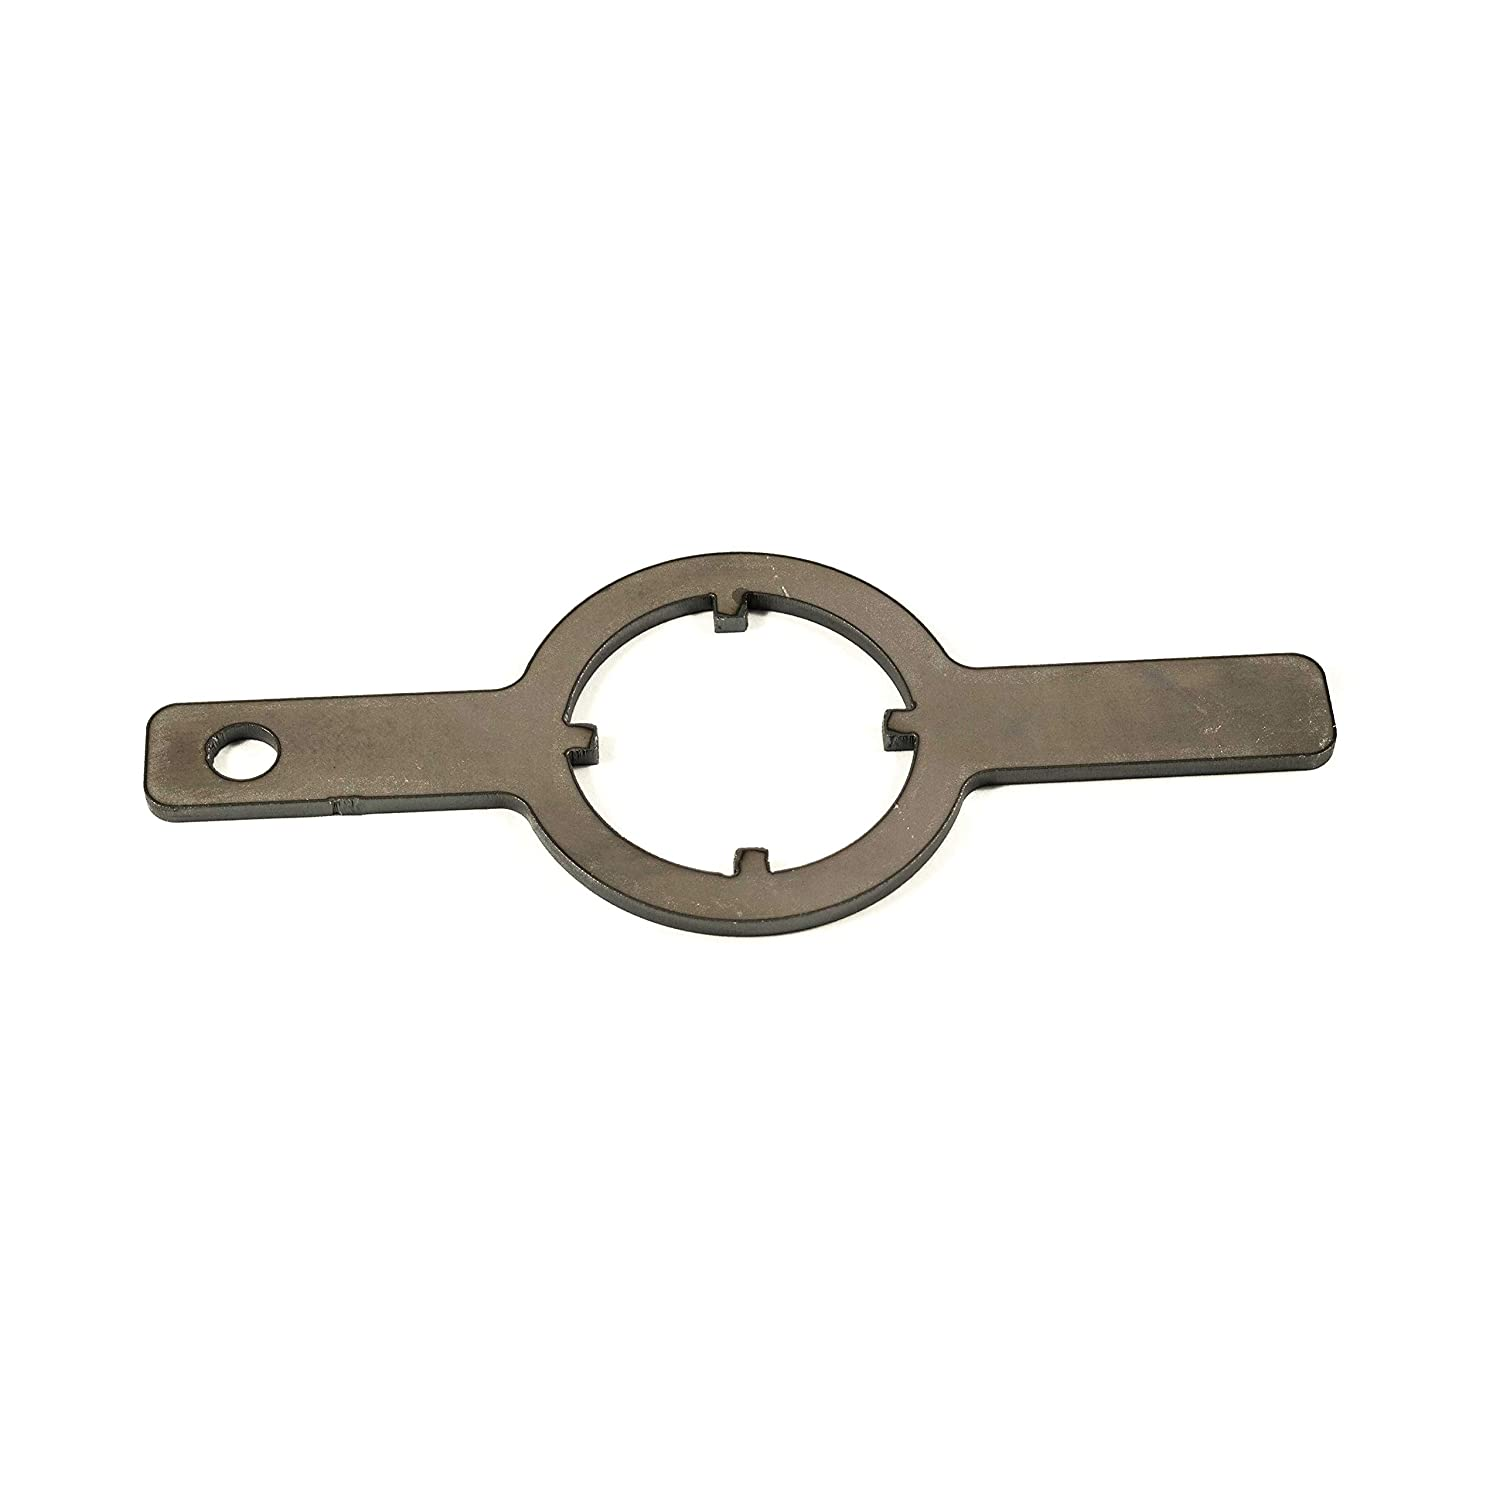 TB123A Compatible (Kenmore/Whirlpool Washer Only) HD Tub Nut Spanner Wrench